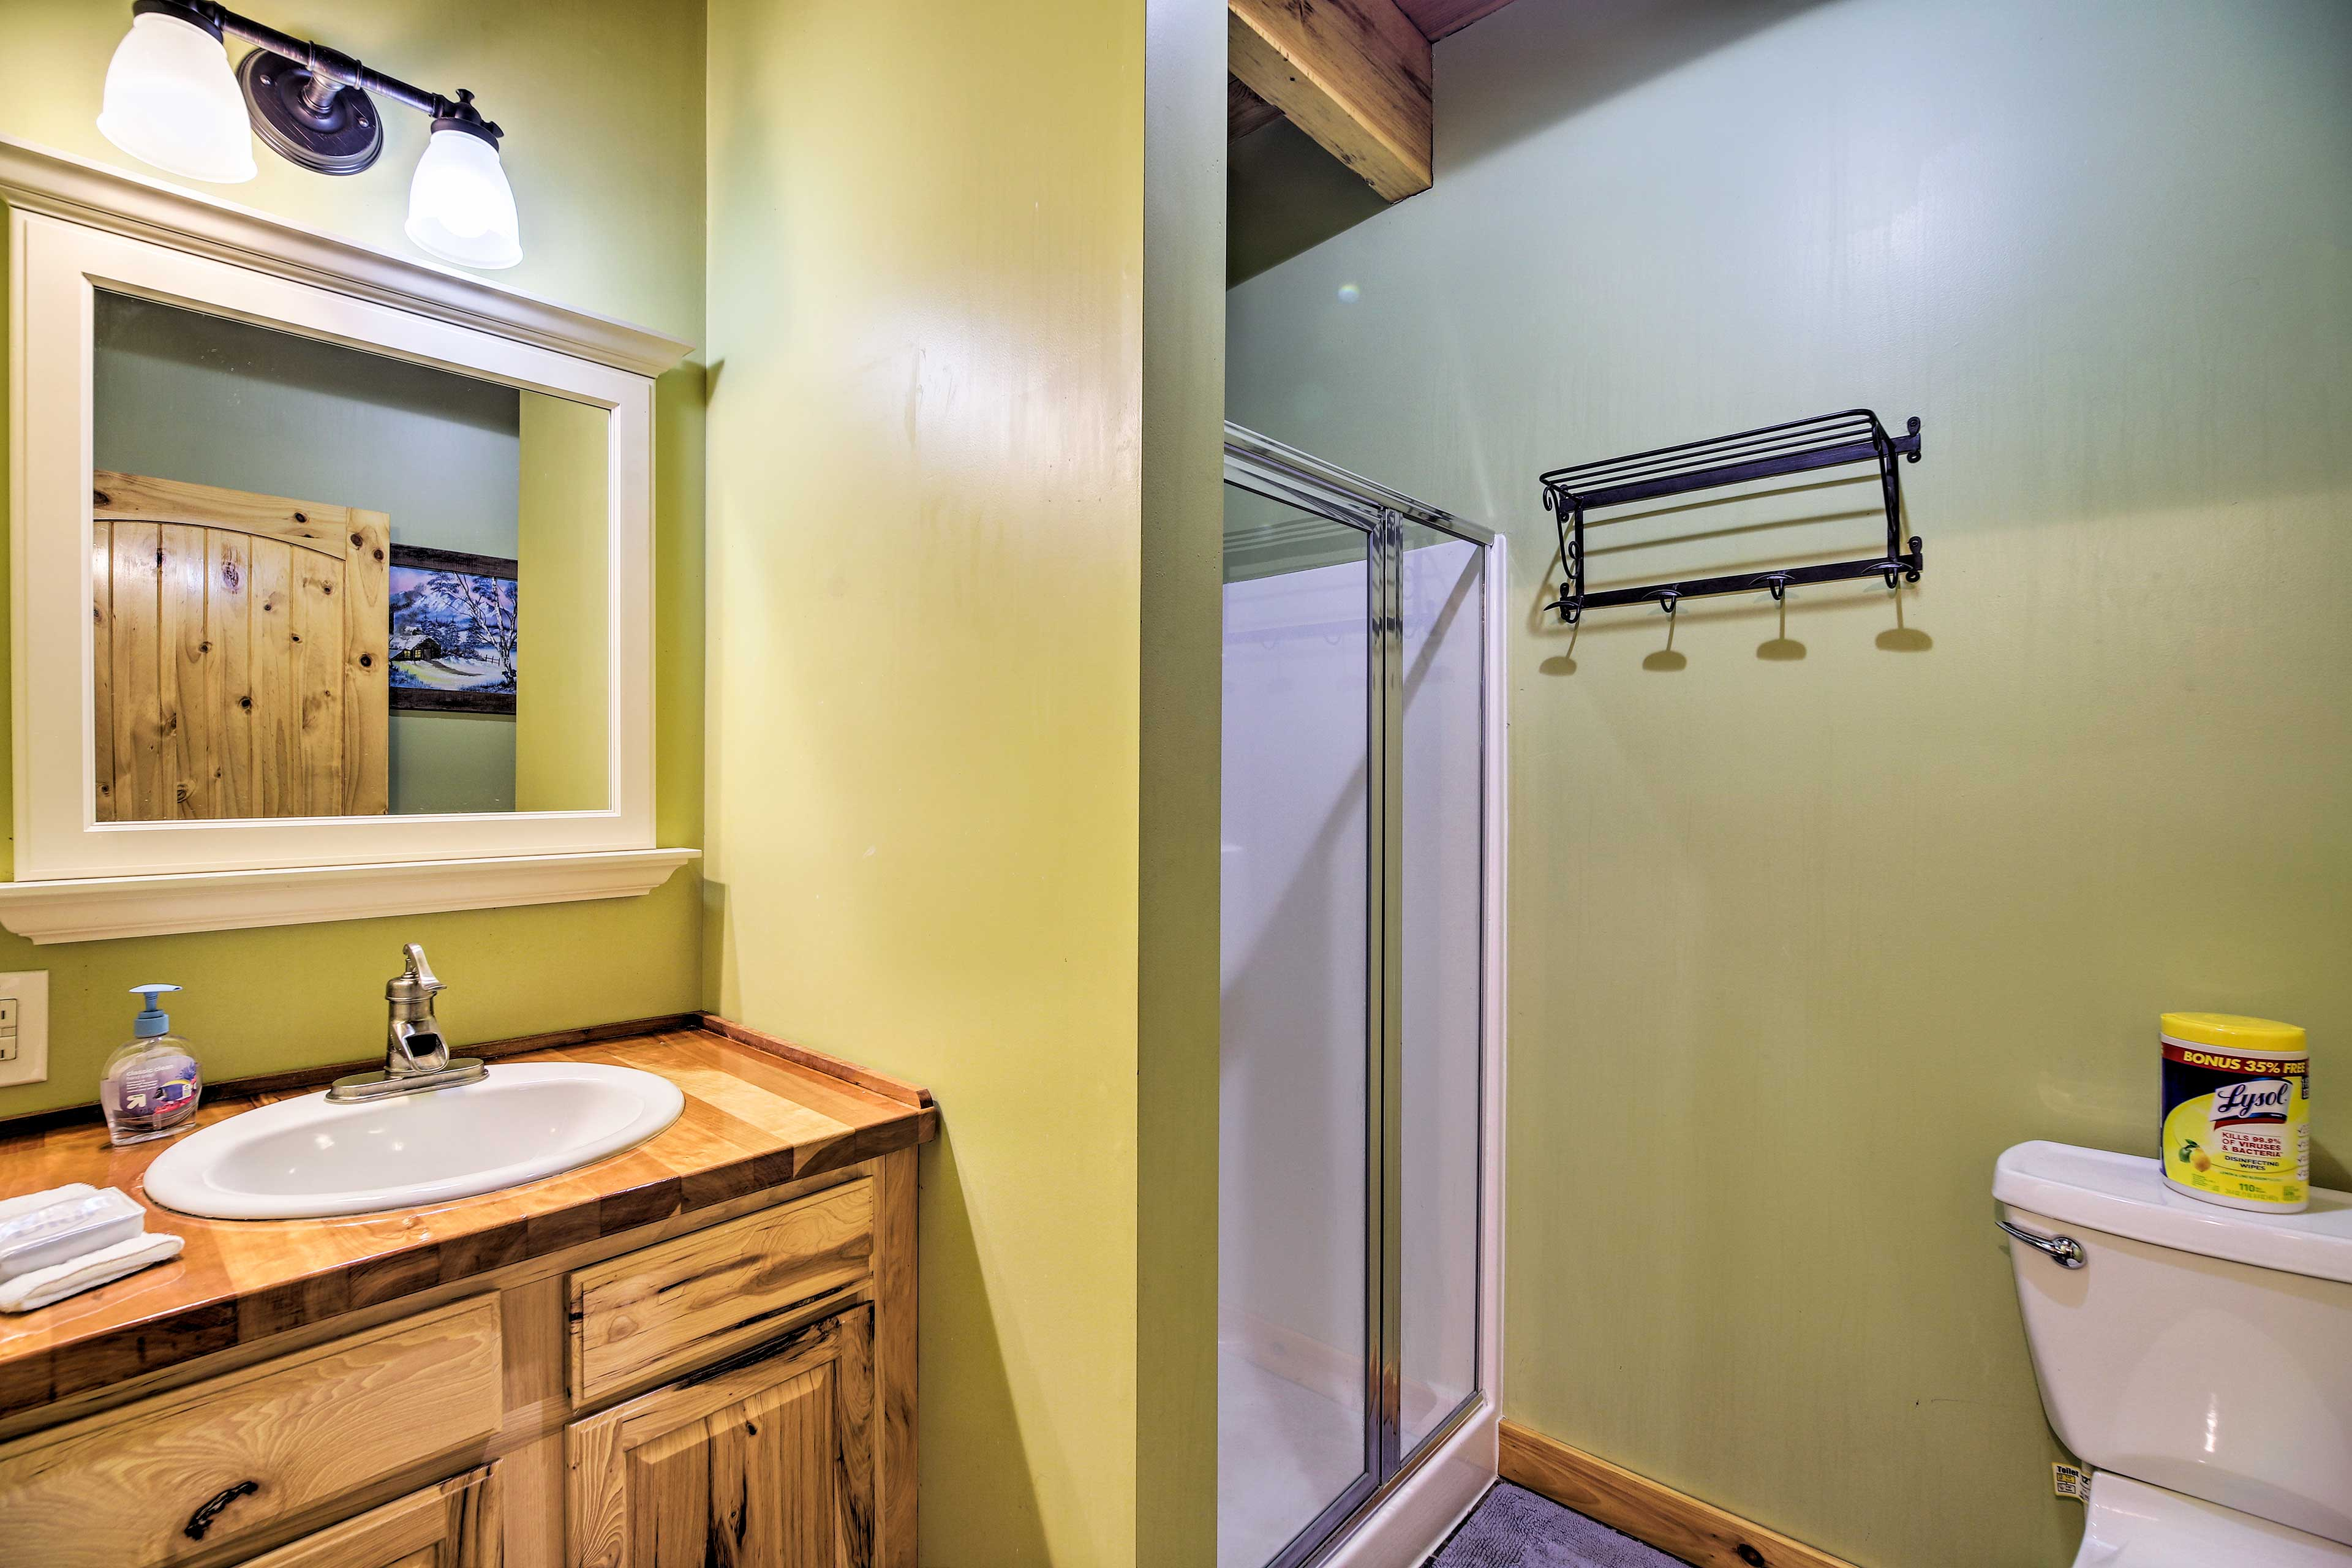 Get ready for the day in the first-floor bathroom.